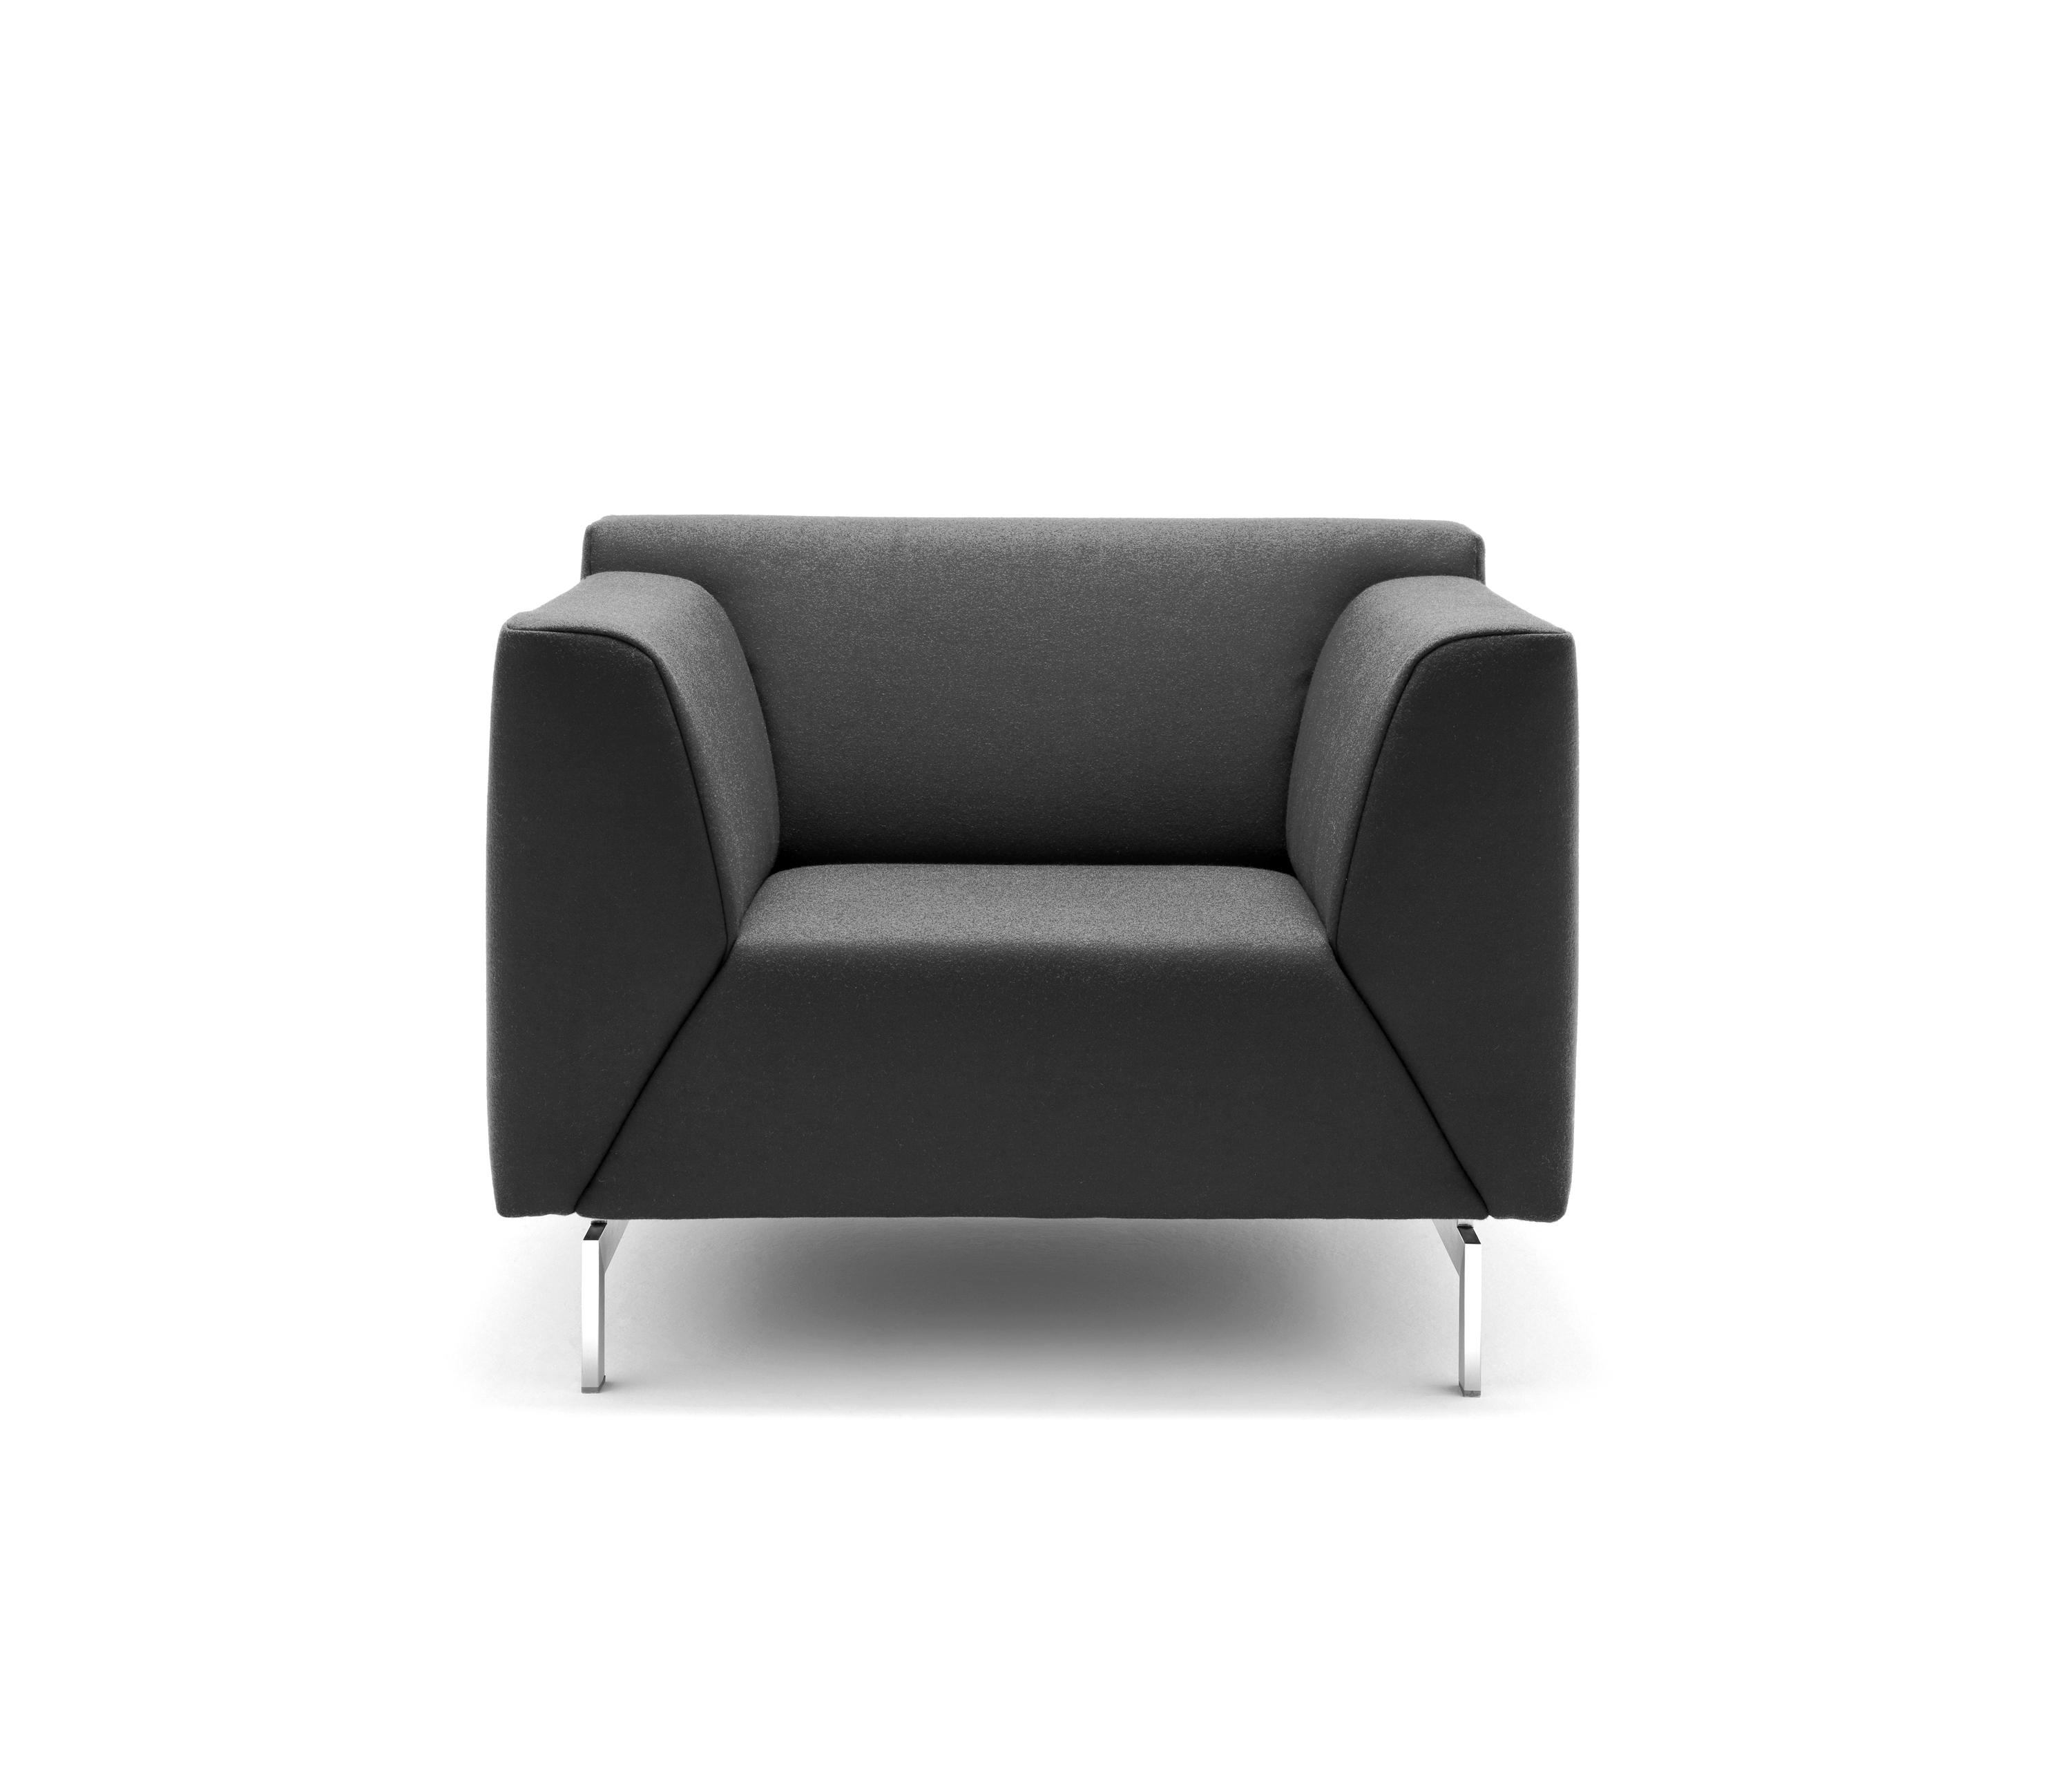 rolf benz linea lounge chairs from rolf benz architonic. Black Bedroom Furniture Sets. Home Design Ideas